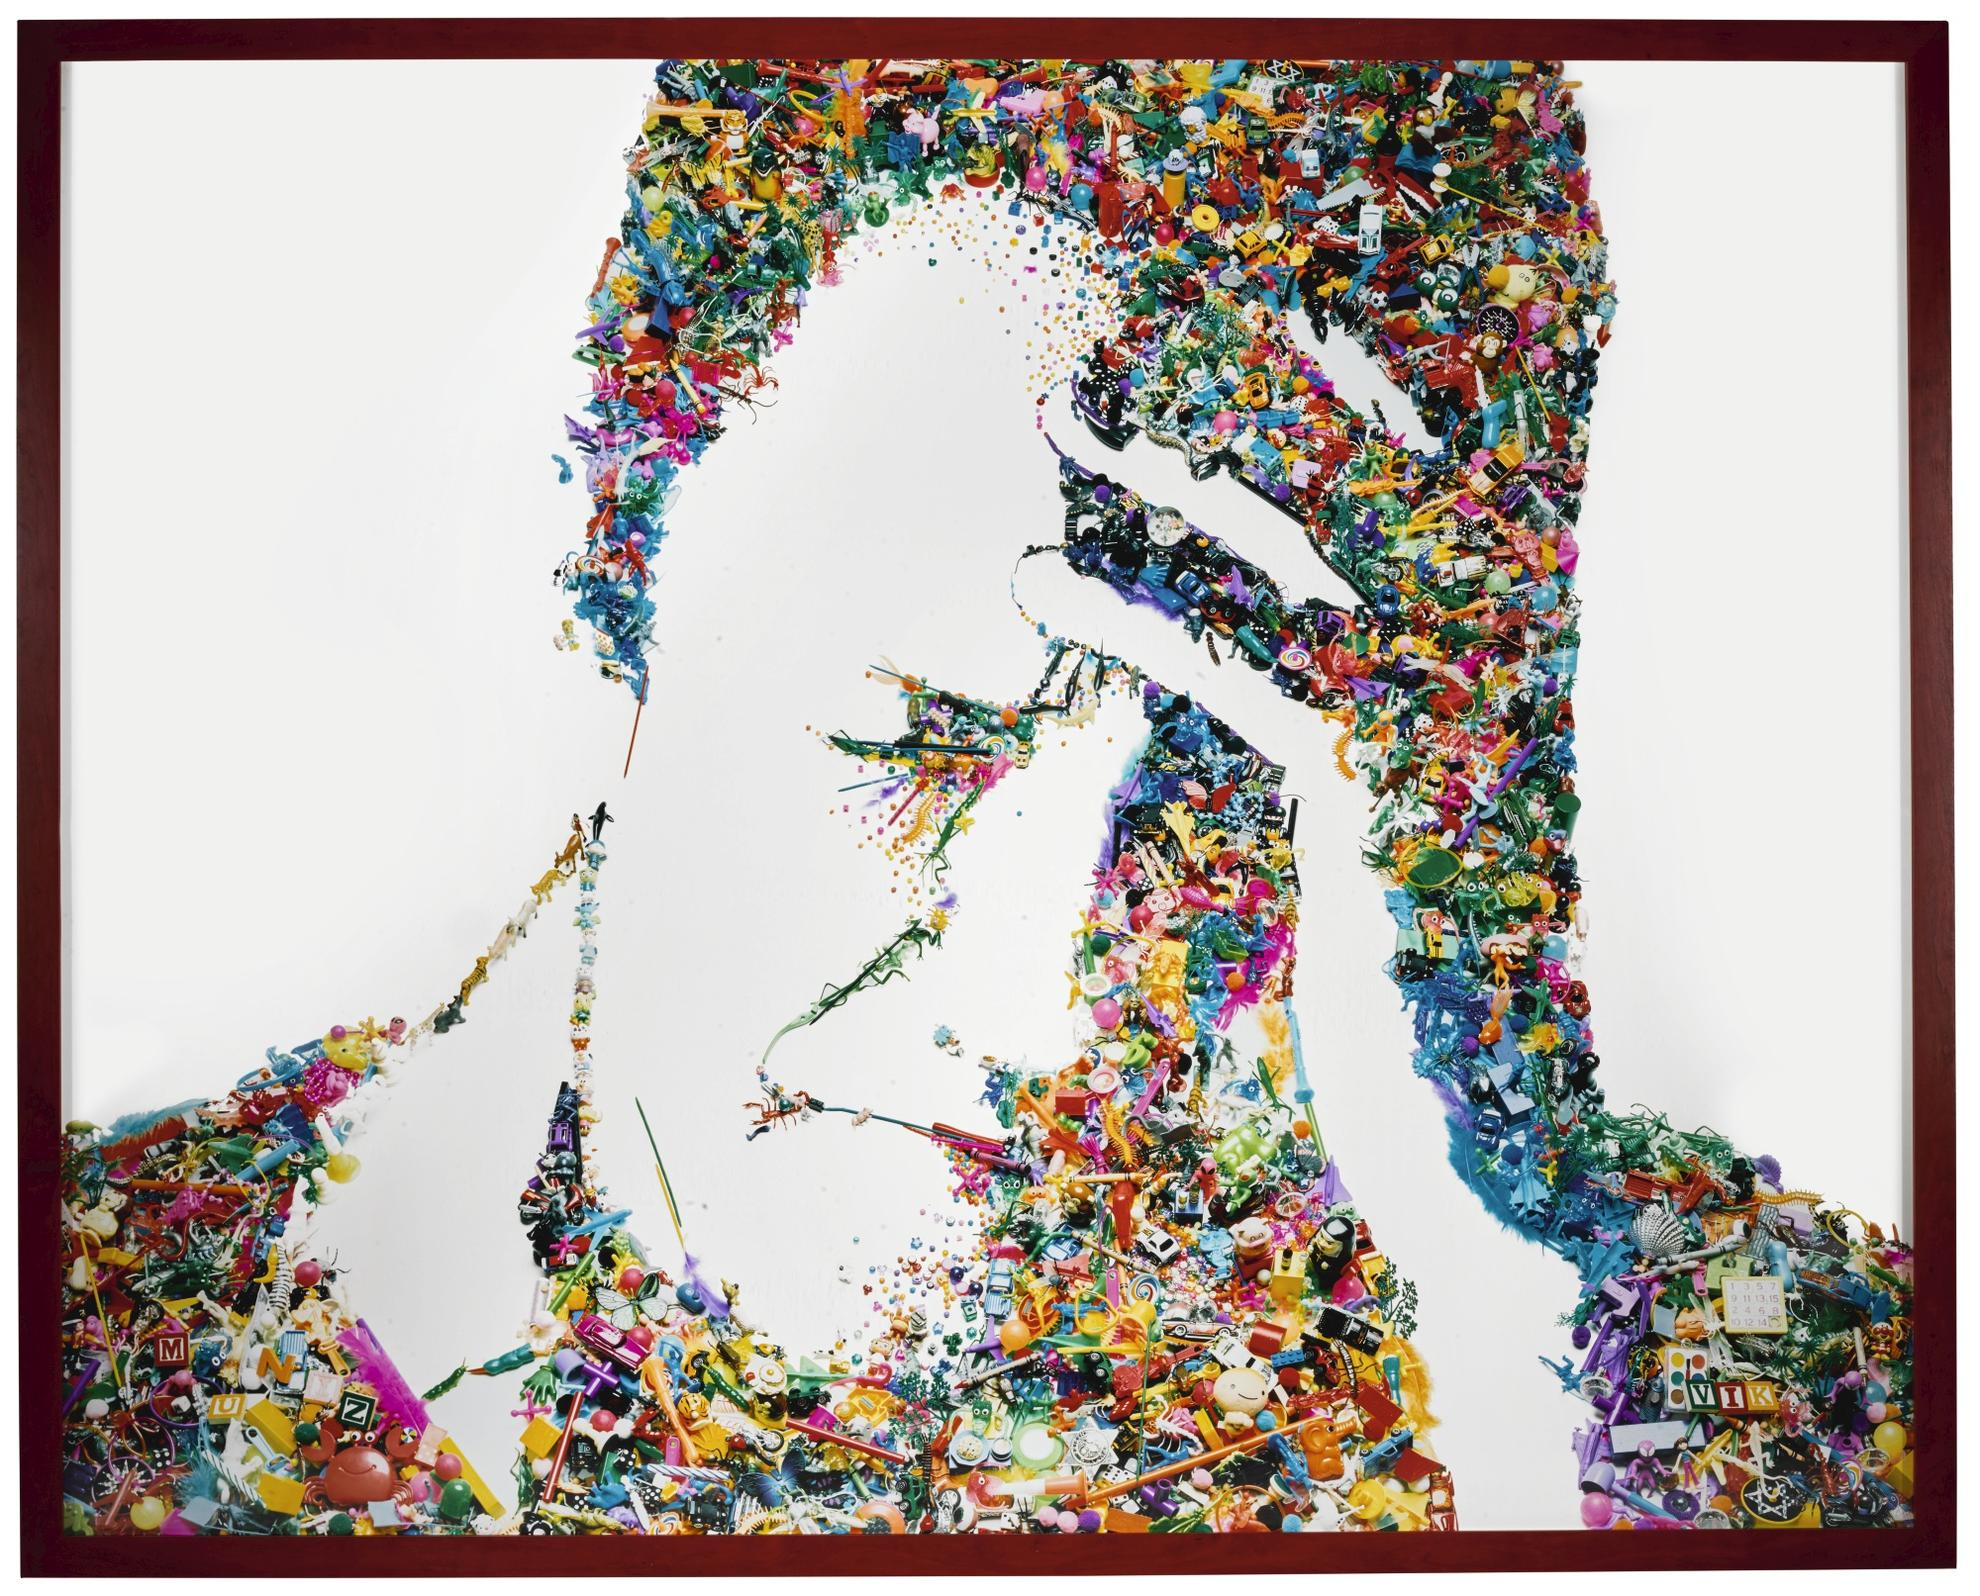 Vik Muniz-Self-Portrait (I Am Too Sad To Tell You, After Bas Jan Ader) (Rebus)-2003